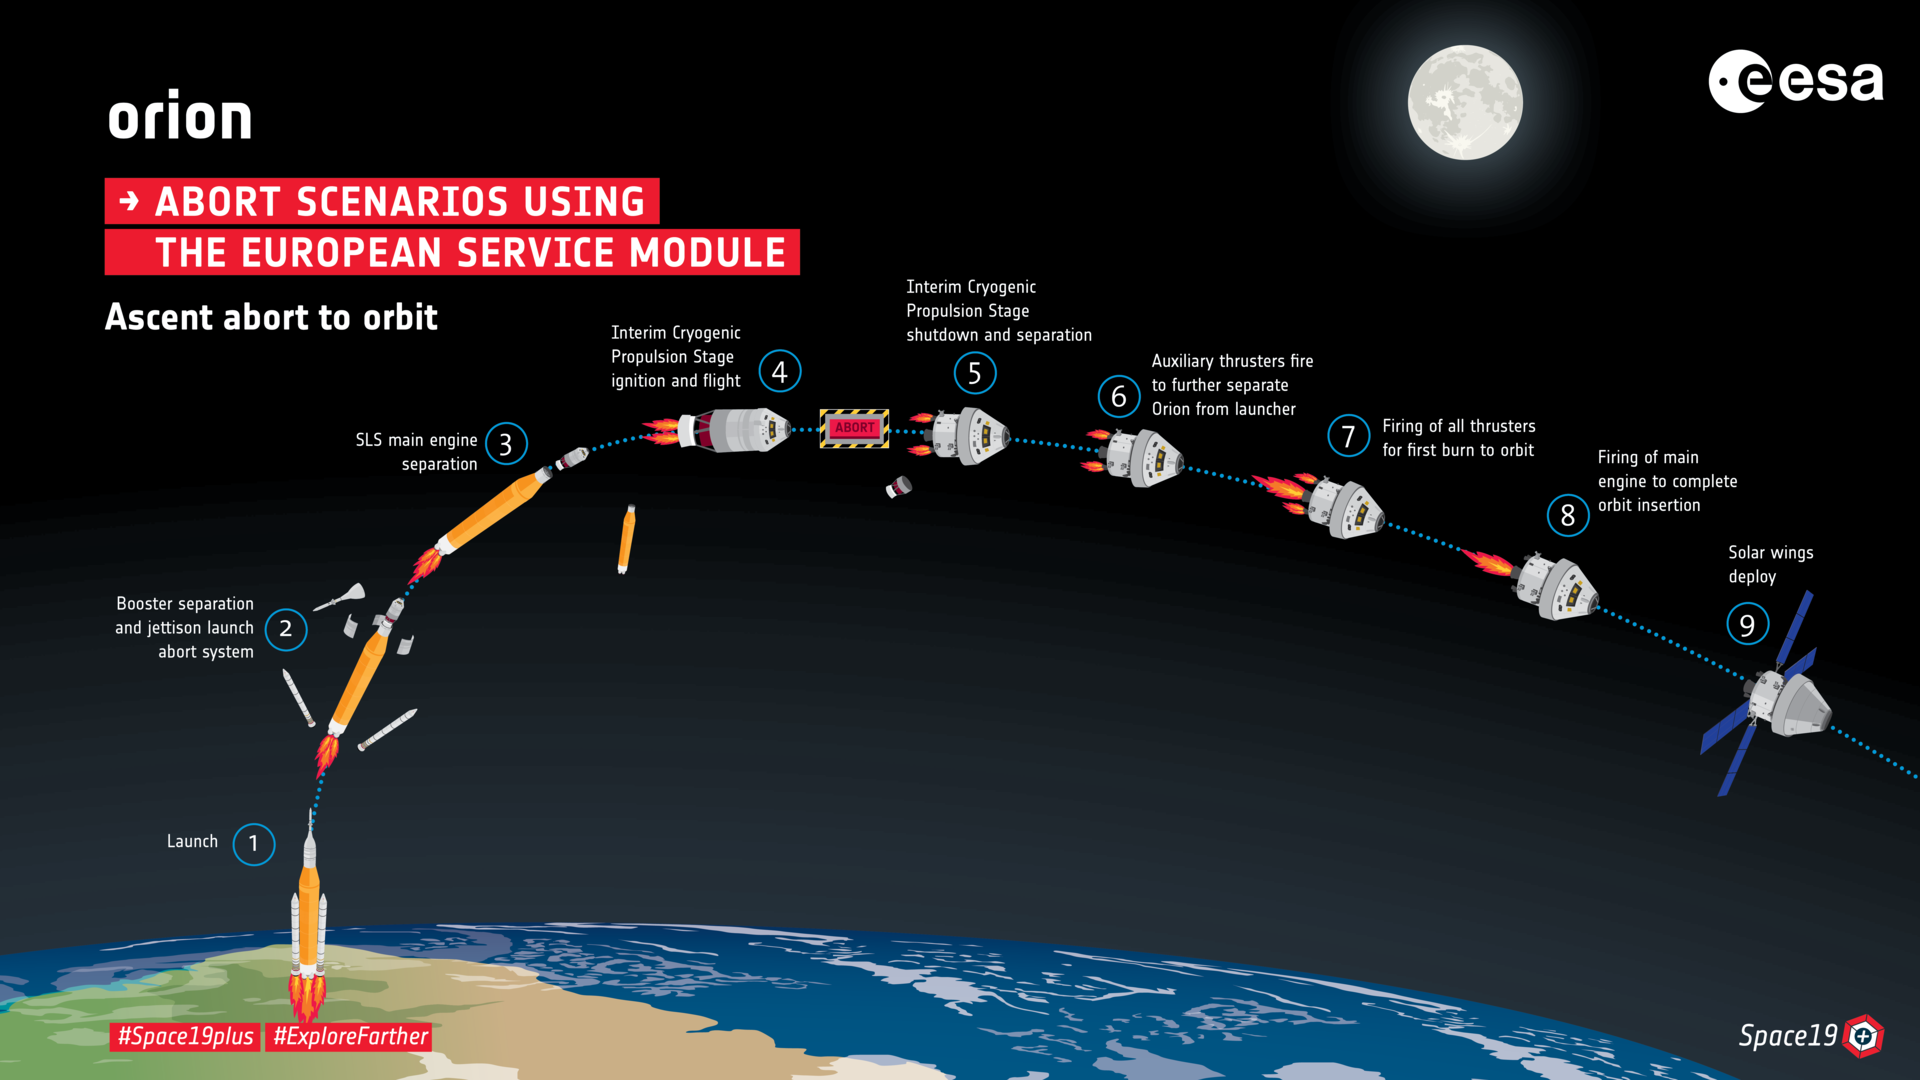 - Orion Abort to orbit pillars - ESA Plans to Send Humans into Space